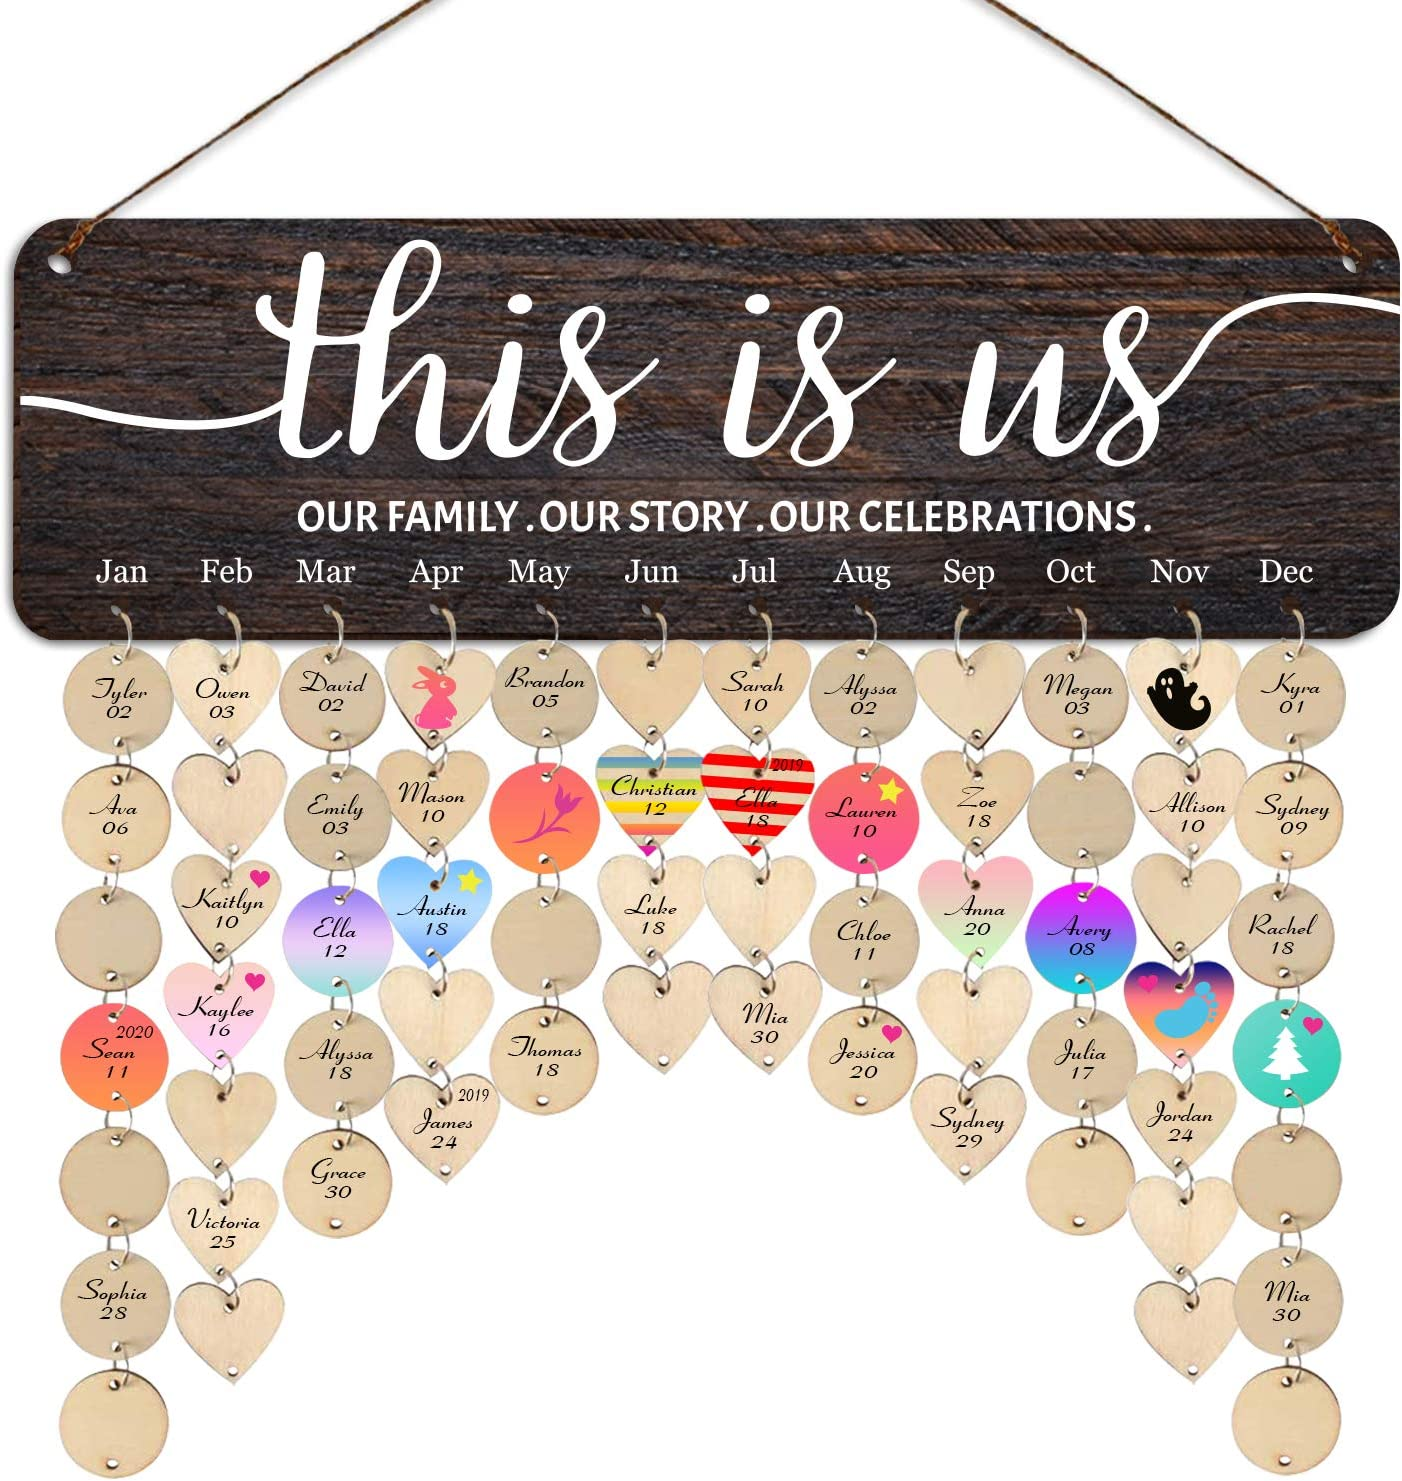 Family Birthday Board This is Us Birthday Board Wall Hanging Family Friends Birthday Reminder Calendar Birthday Gift Idea for Women Christmas Presents for Grandparents Office Classroom Decoration